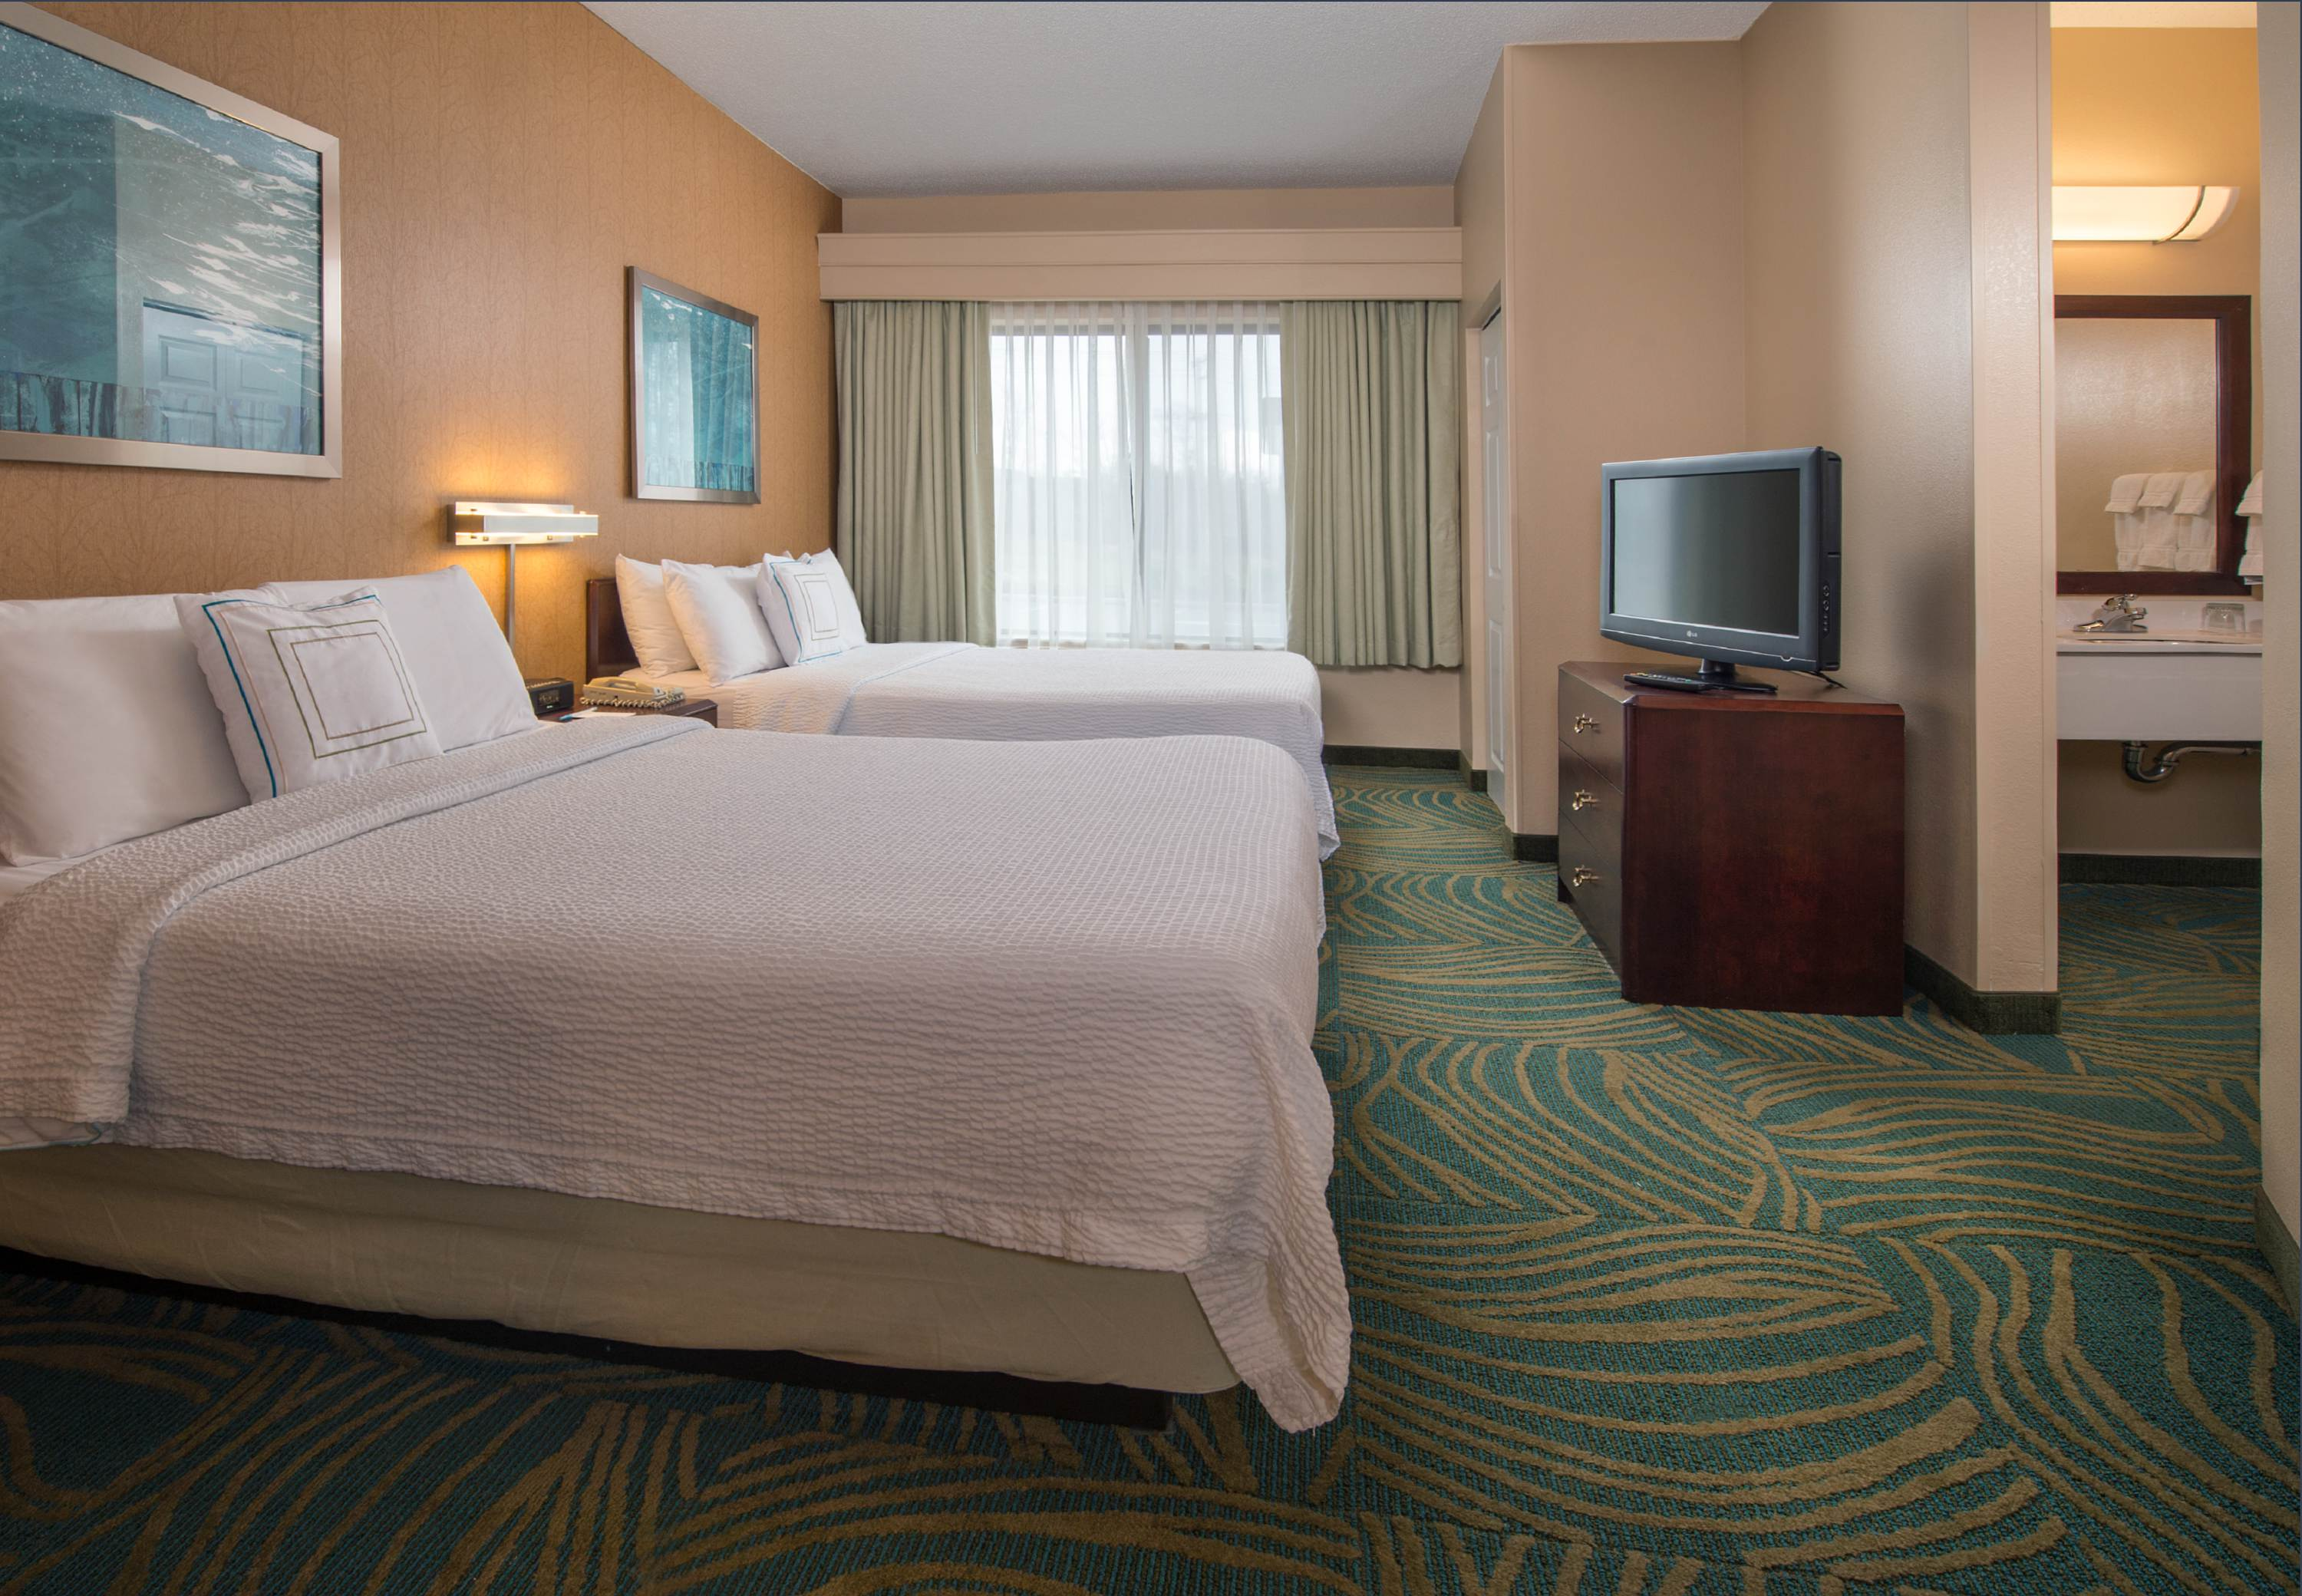 SpringHill Suites by Marriott Edgewood Aberdeen image 11